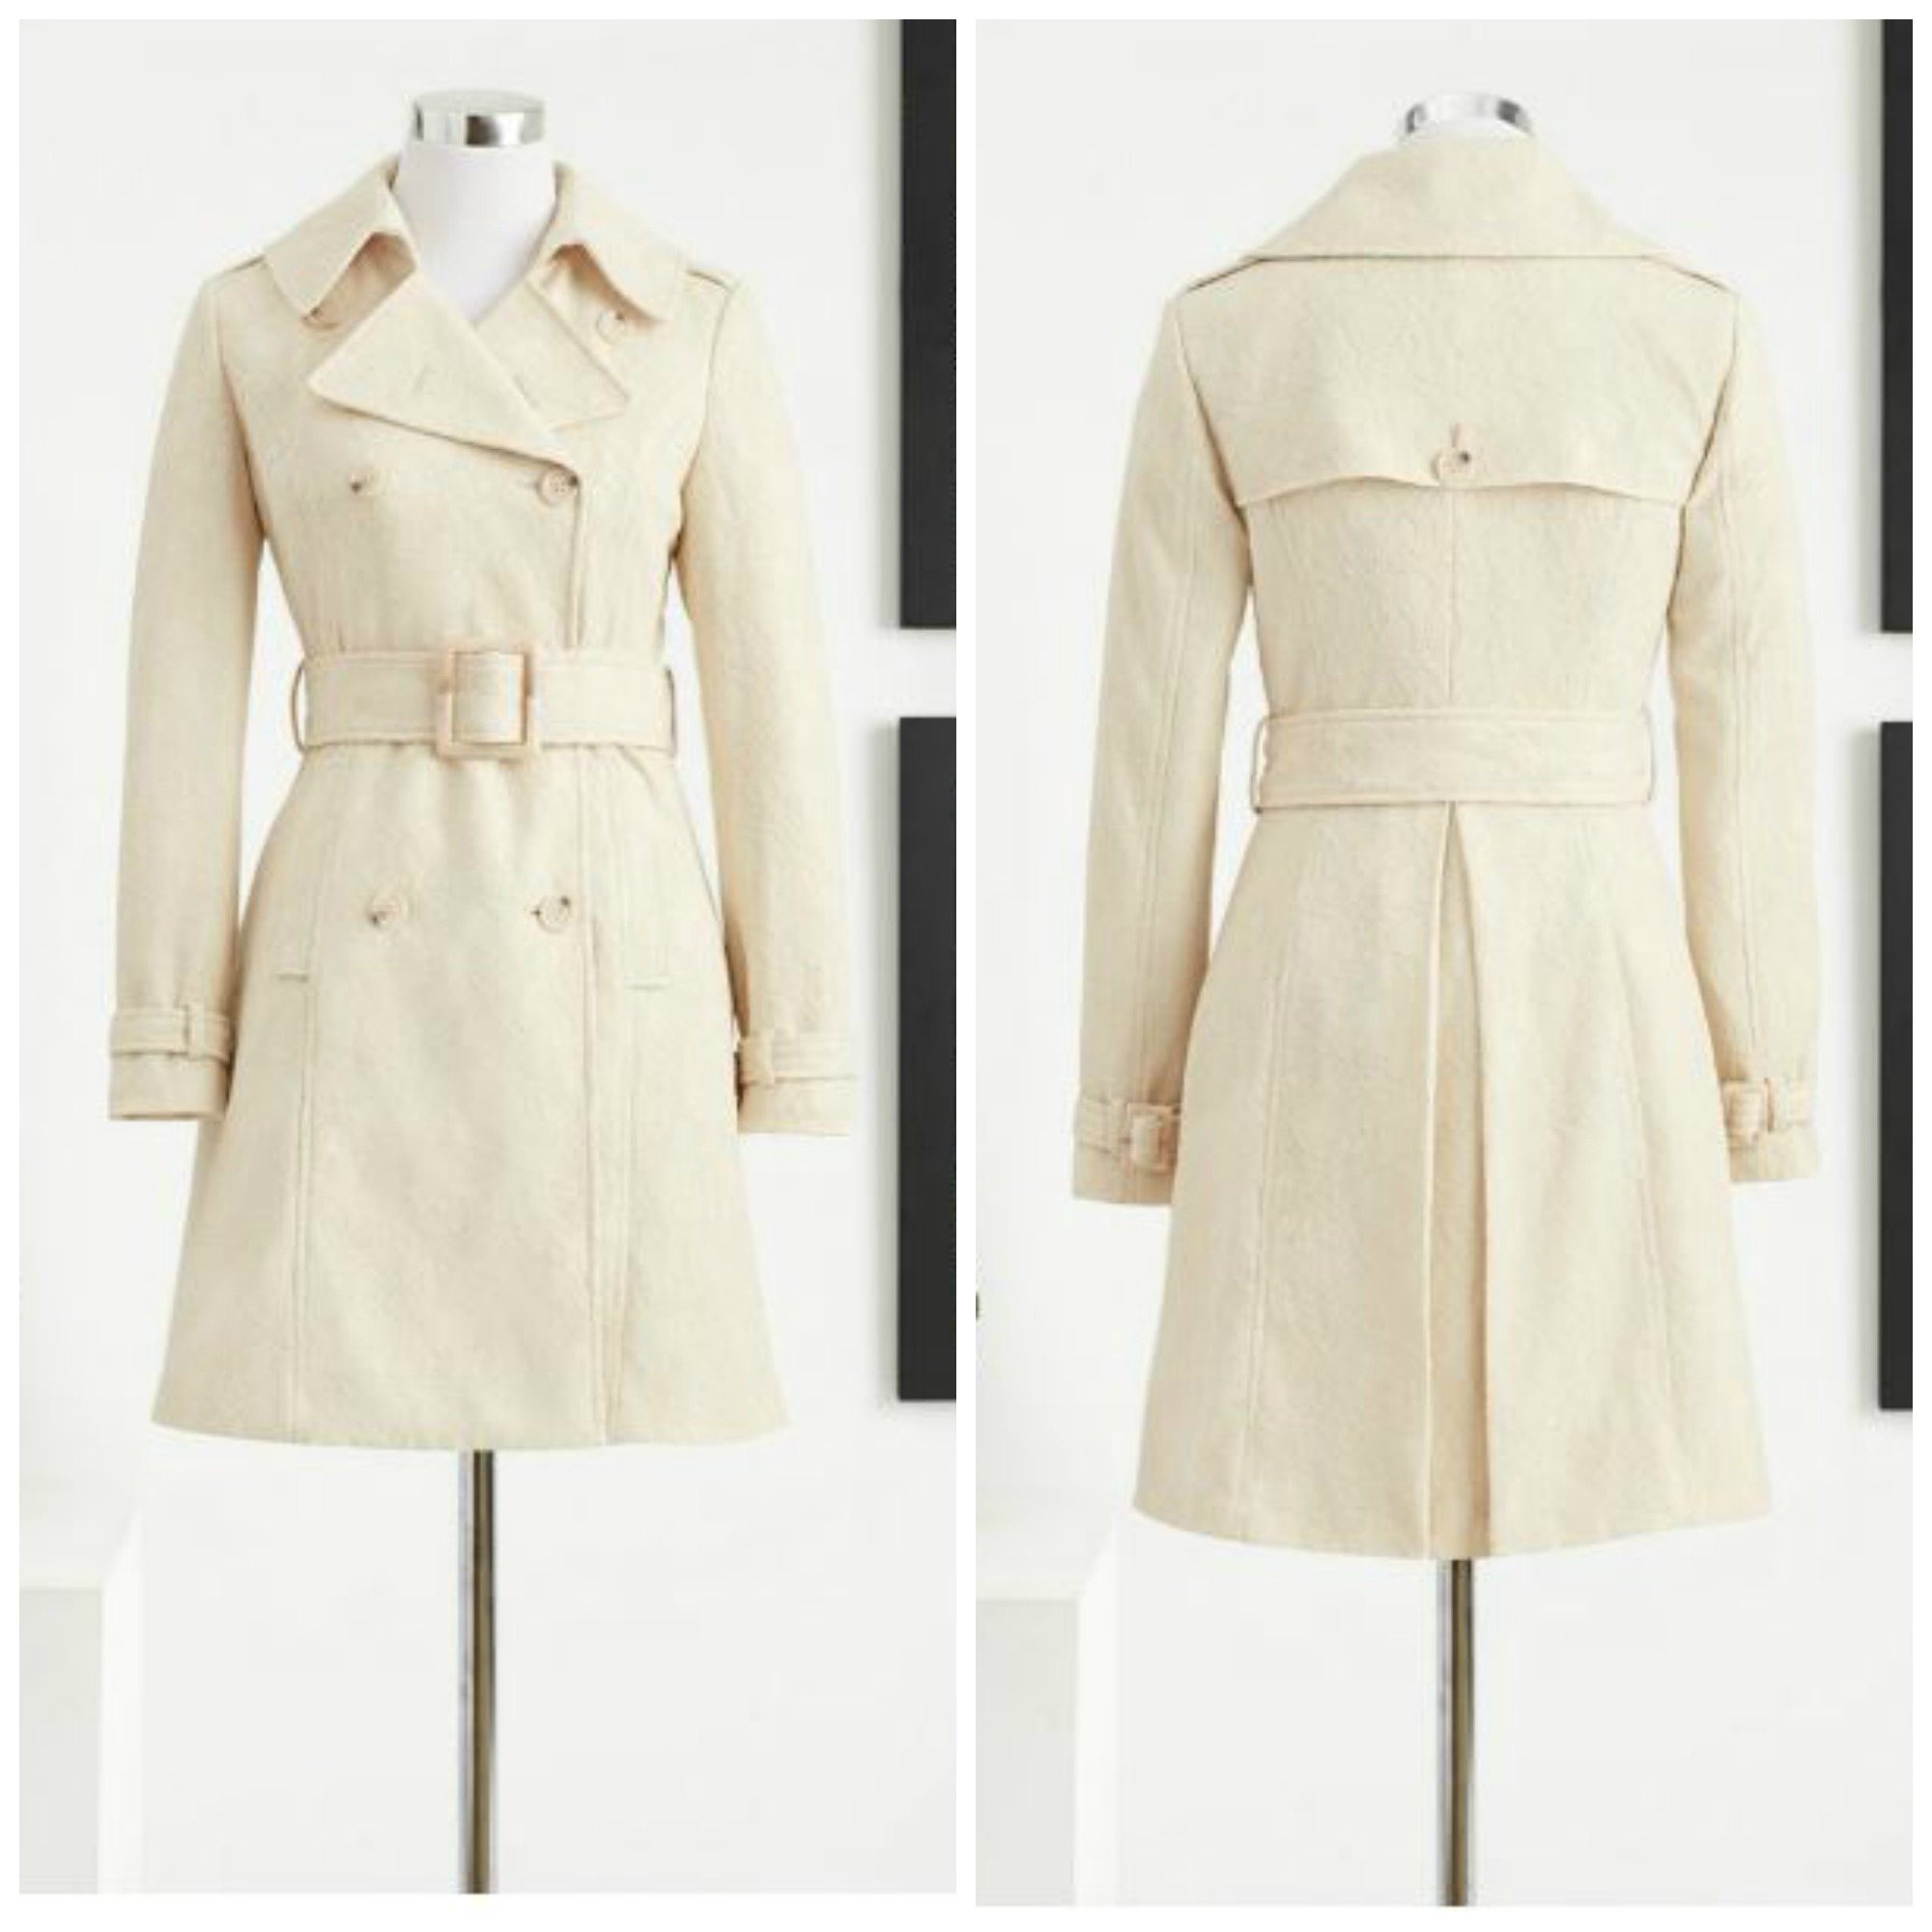 New York & Company Eva Mendes Collection Kelsey Lace Trench Coat